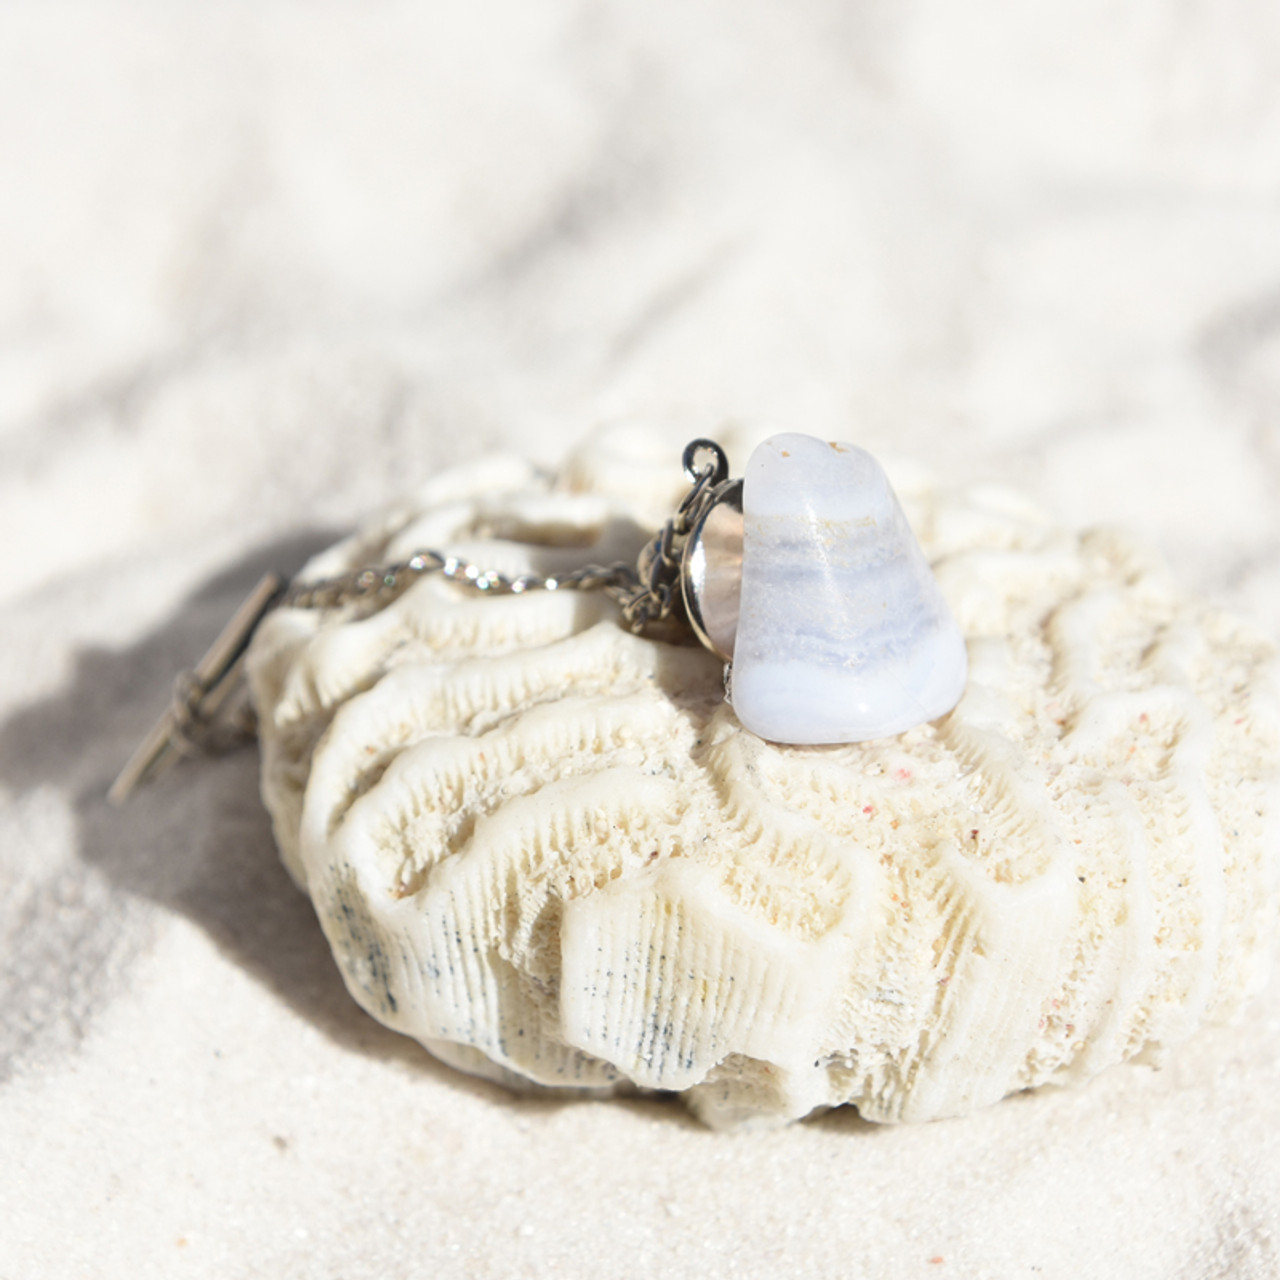 Blue Lace Agate Tie Tack